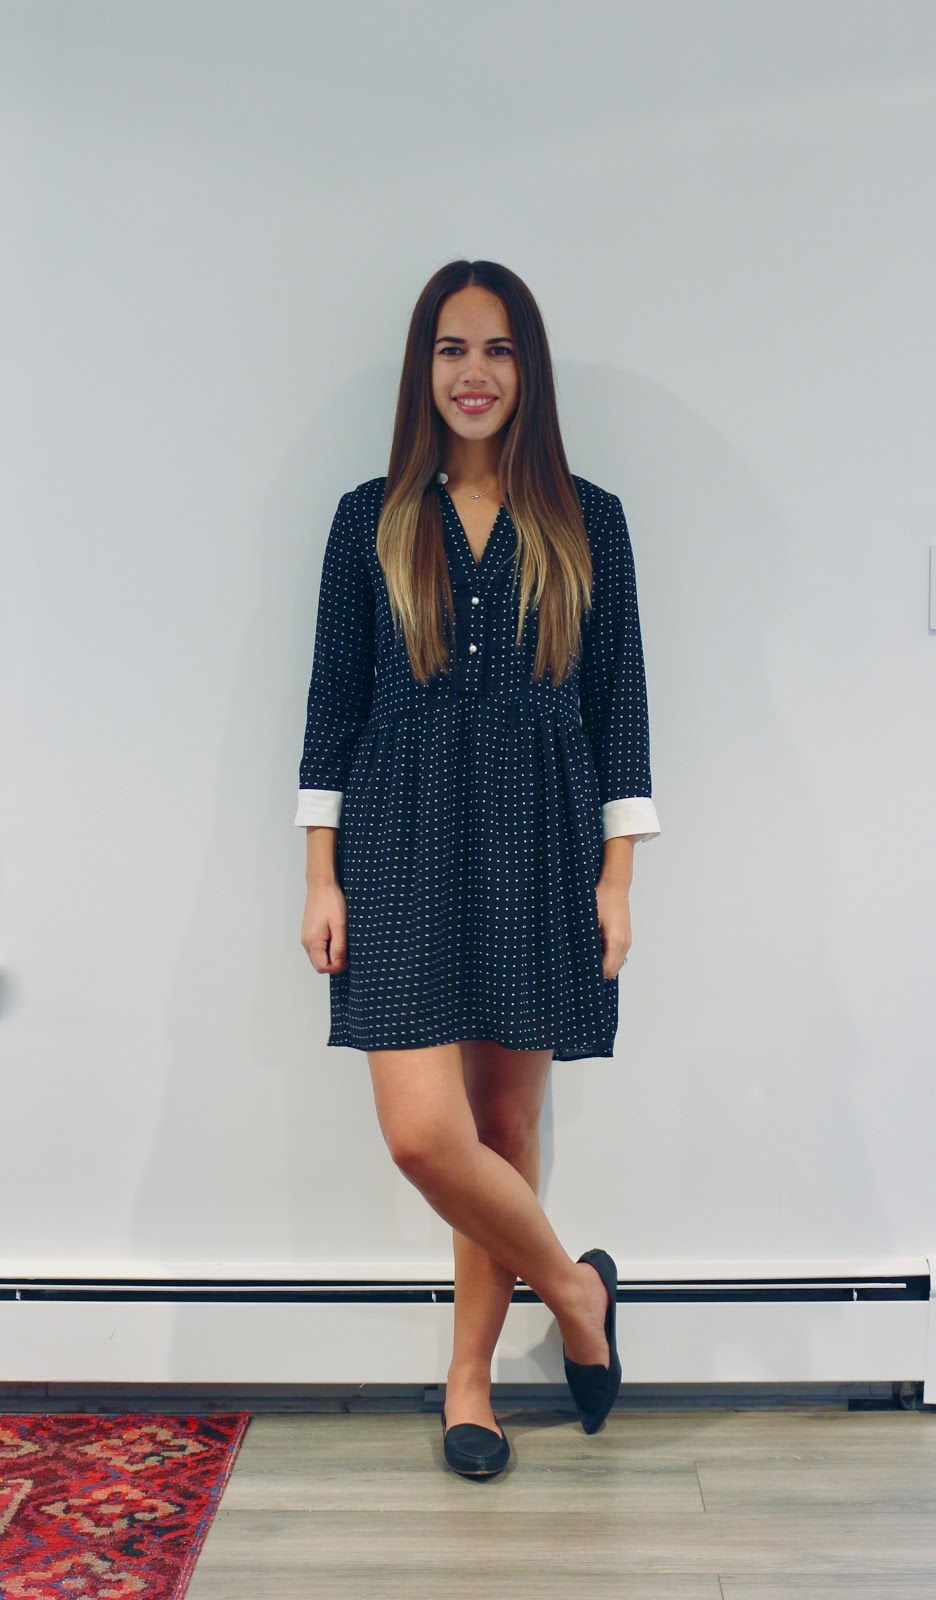 Jules in Flats - Contrast Collar Polka Dot Mini Dress (Business Casual Workwear on a Budget)